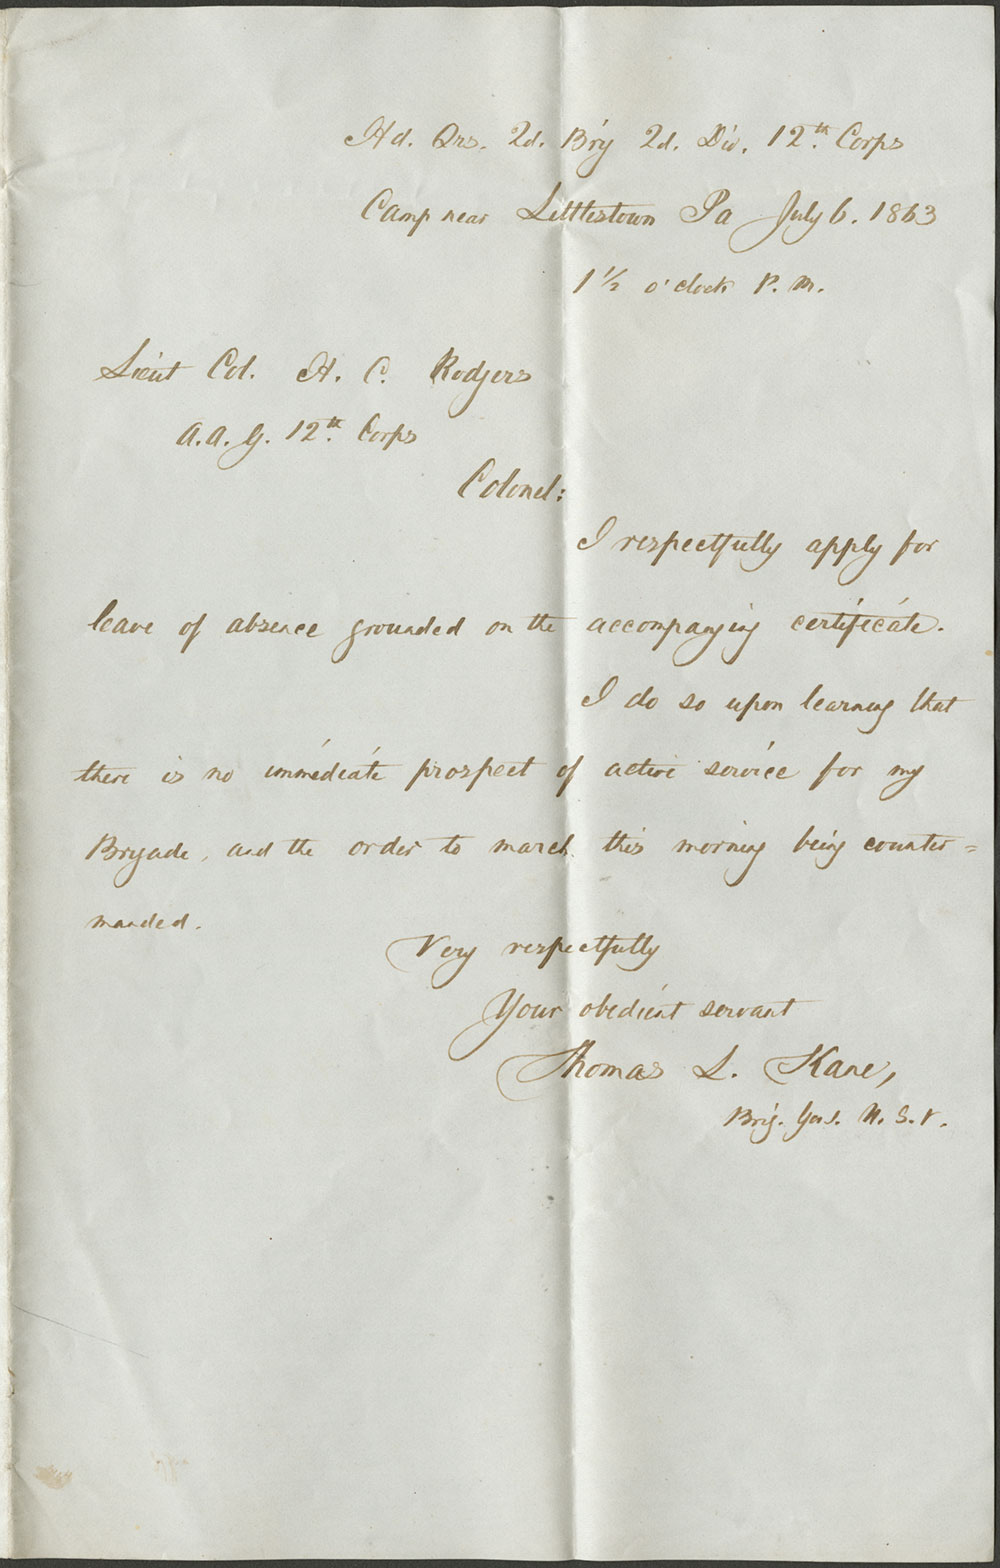 General Thomas L. Kane to Lt. Col. H.C. Rodgers [with a forwarding recommendation from J.L. Dunn]. 6 July, 1863 (Vault MSS 792, Box 23, Folder 6, Item 31)